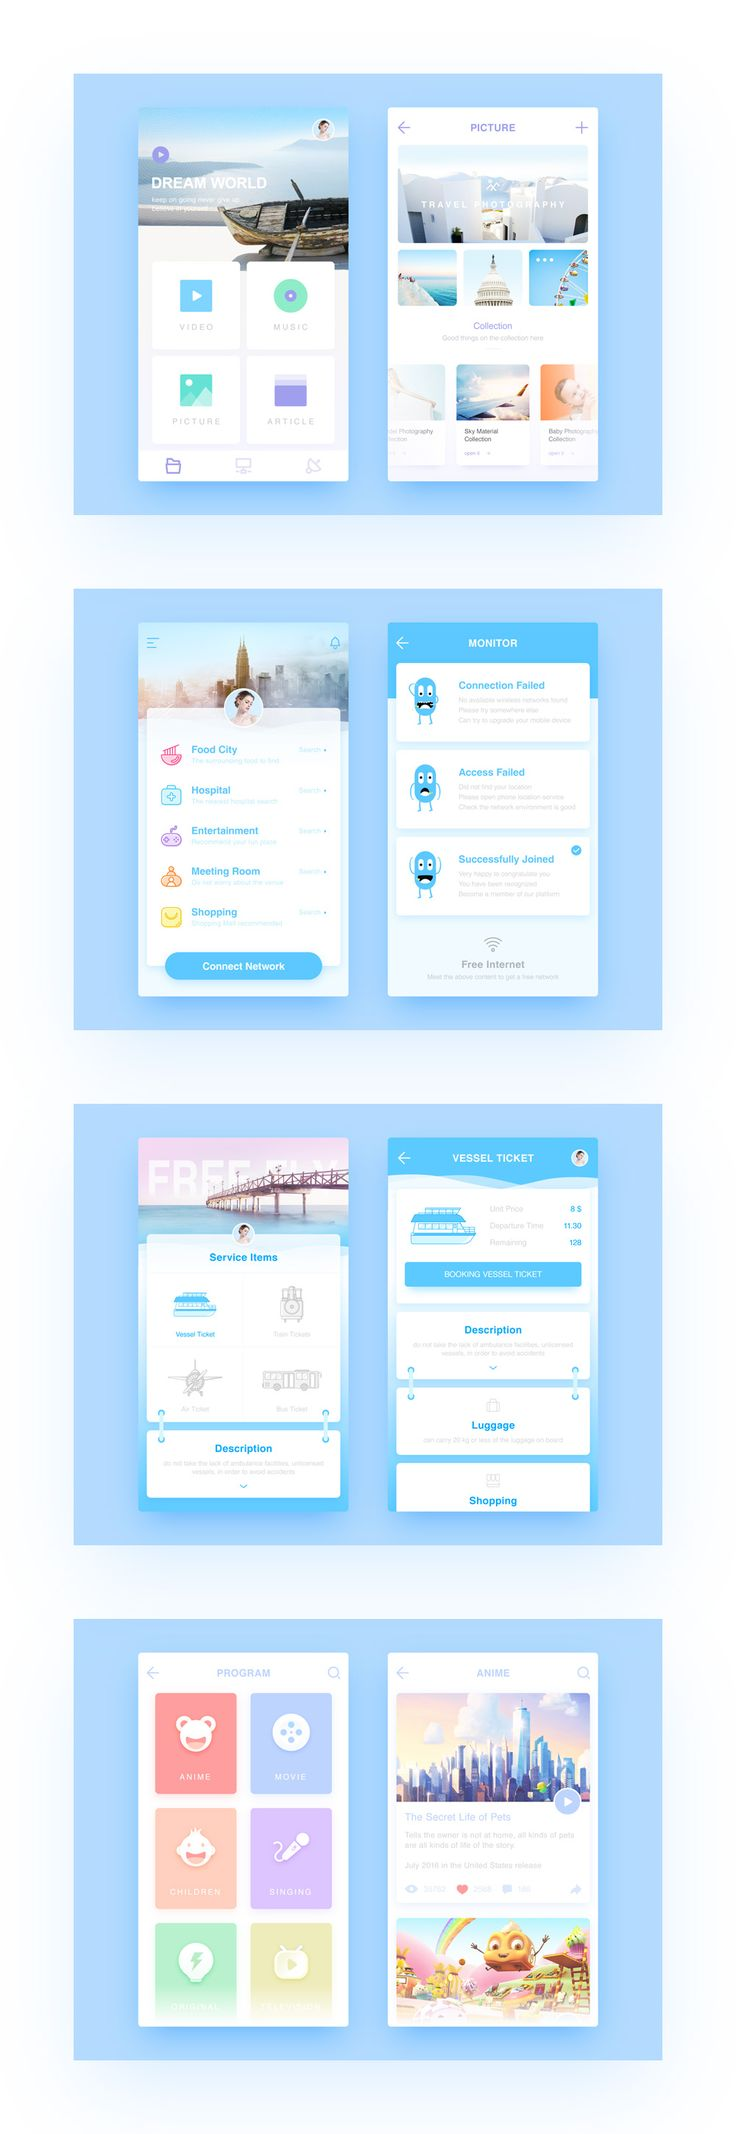 Dribbble - 2222.jpg by bill_uid 예쁜 색감